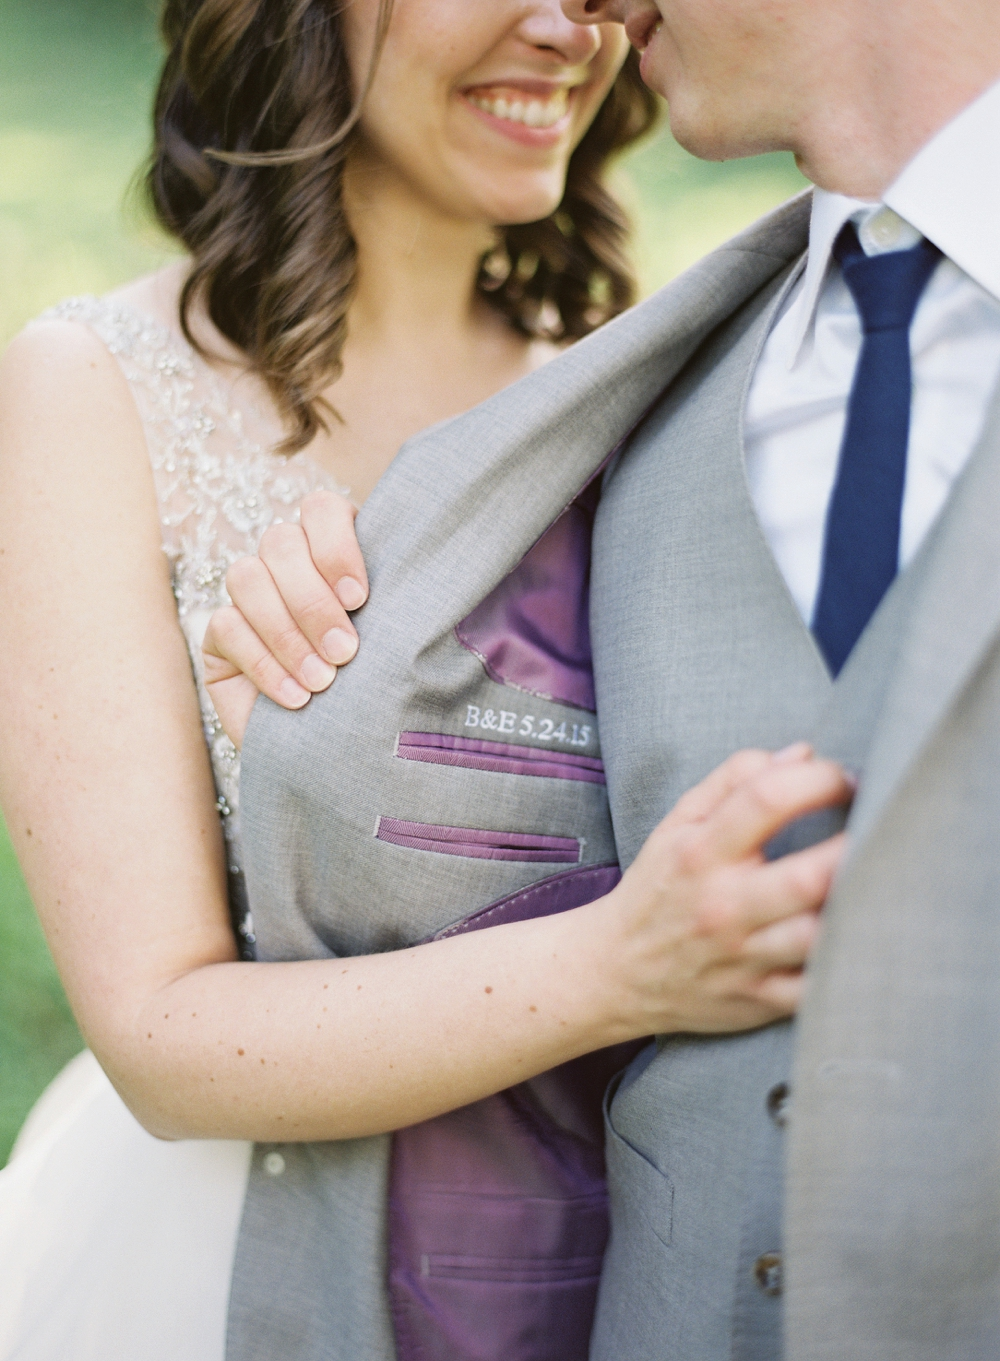 Photocredit: Vicki Grafton         Your initials and wedding date in your suit jacket is a hidden, but adorable, detail.